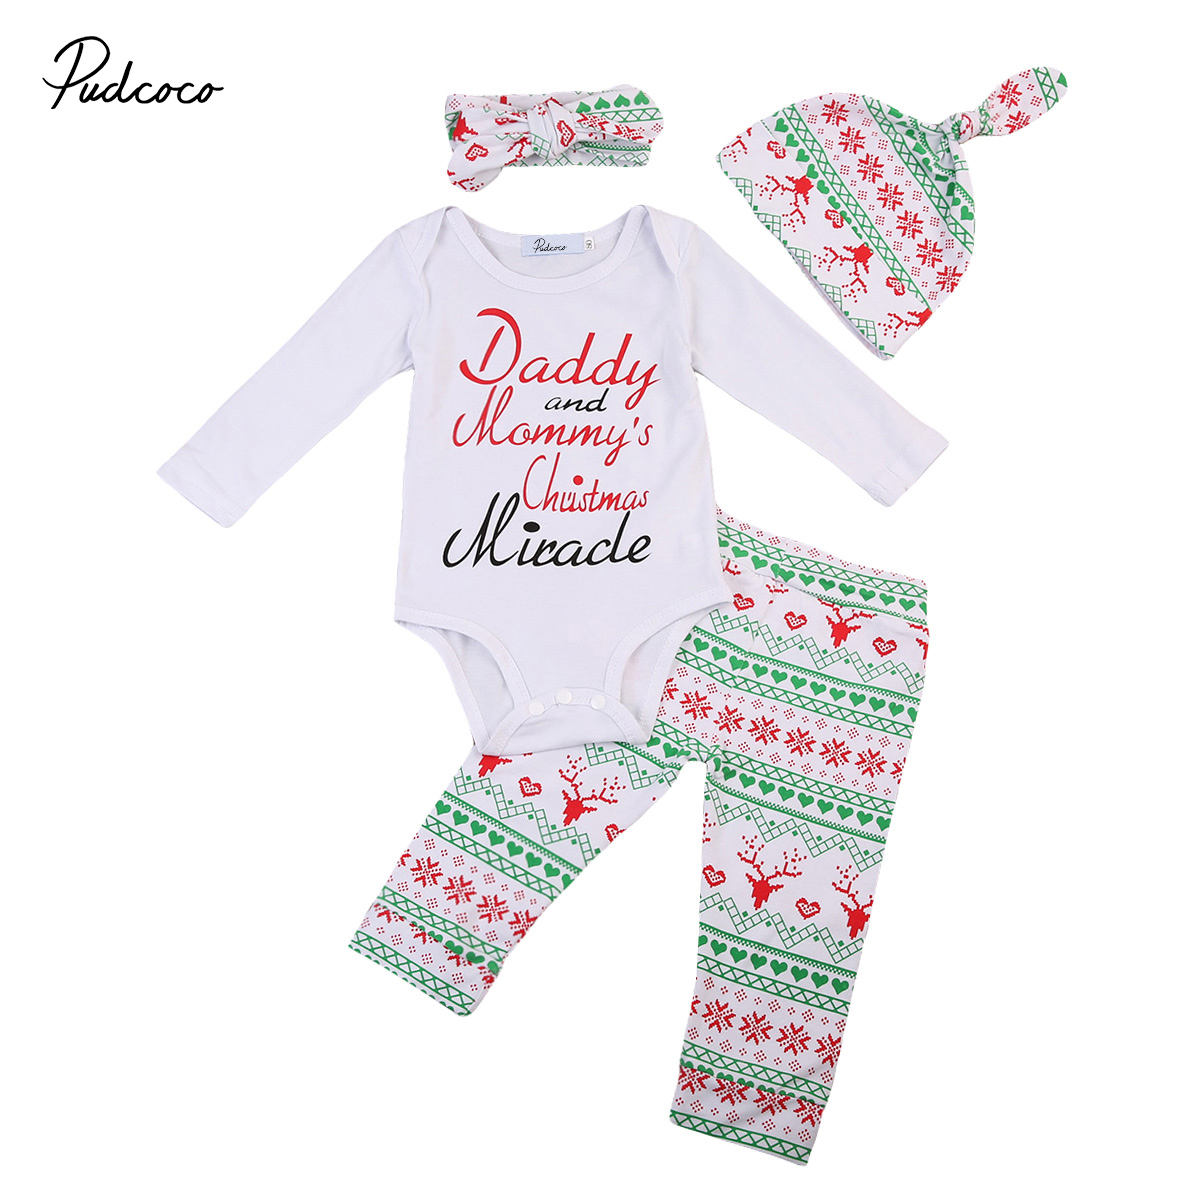 4PCS Newborn Baby Girls Outfit Clothes Cotton Warm Long Sleeve Print Bodysuit Long Pants Hat Bow Headband 3pcs newborn baby girl clothes set long sleeve letter print cotton romper bodysuit floral long pant headband outfit bebek giyim